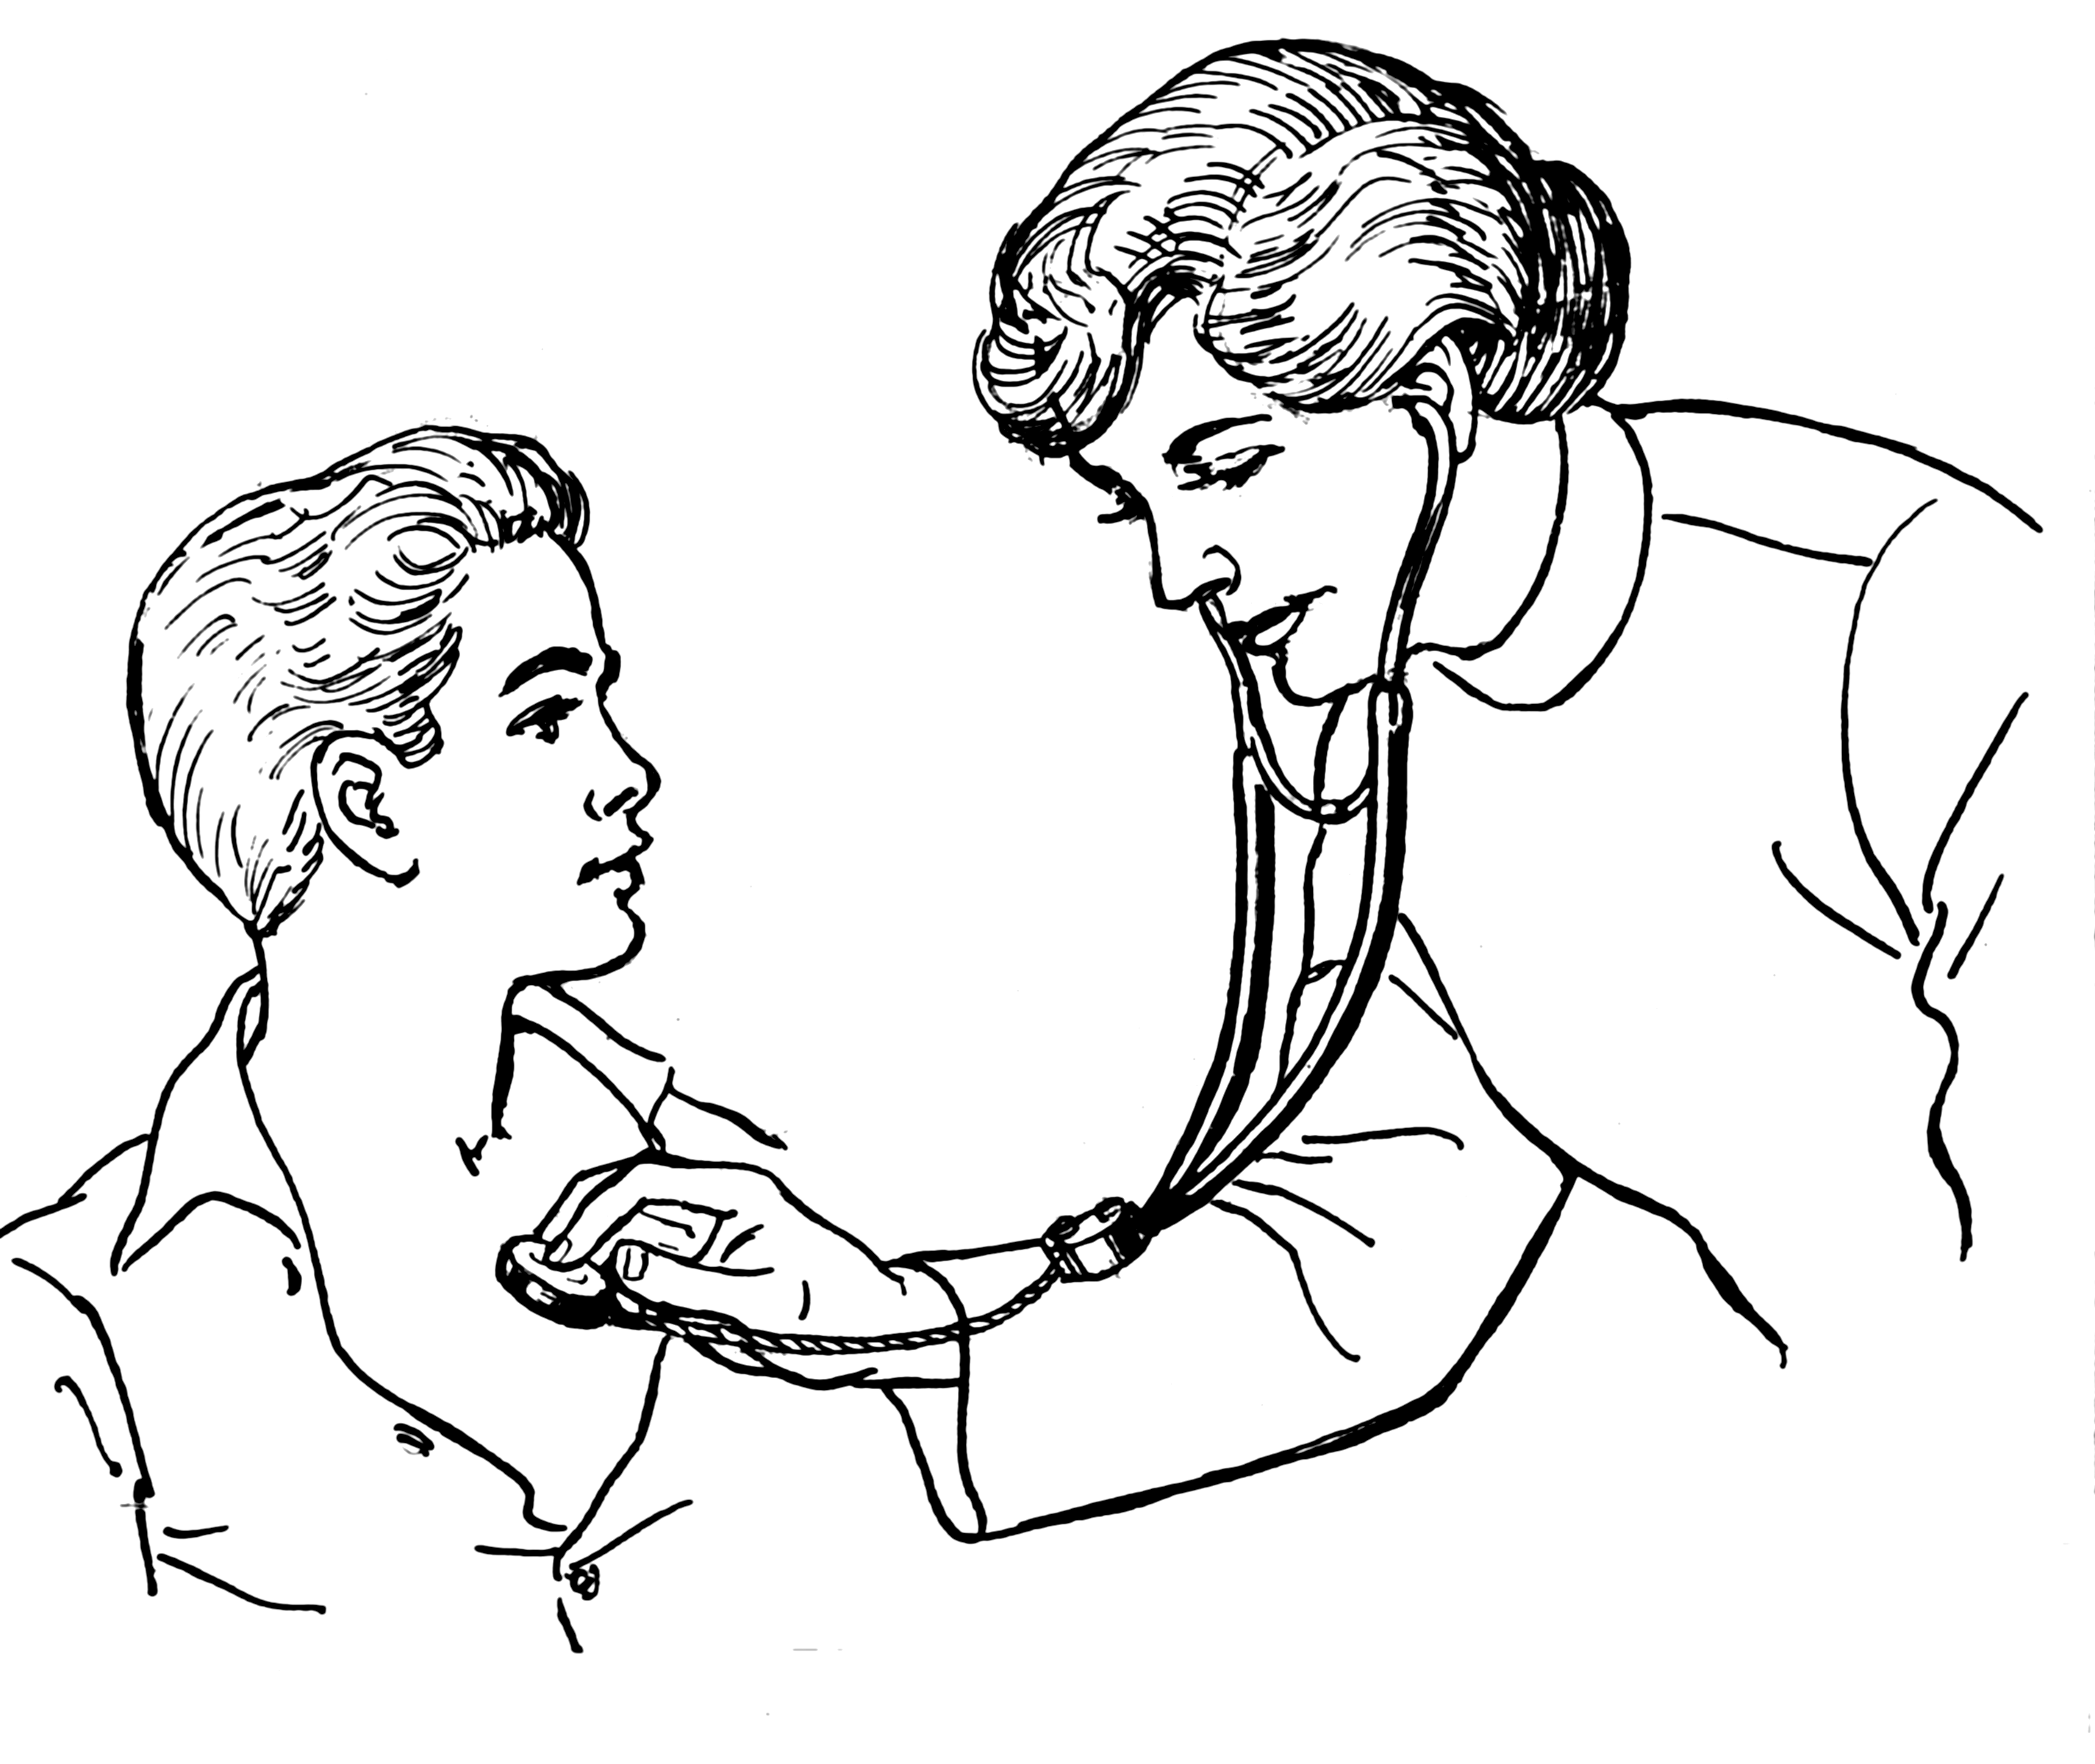 Stethoscope_%28PSF%29.png